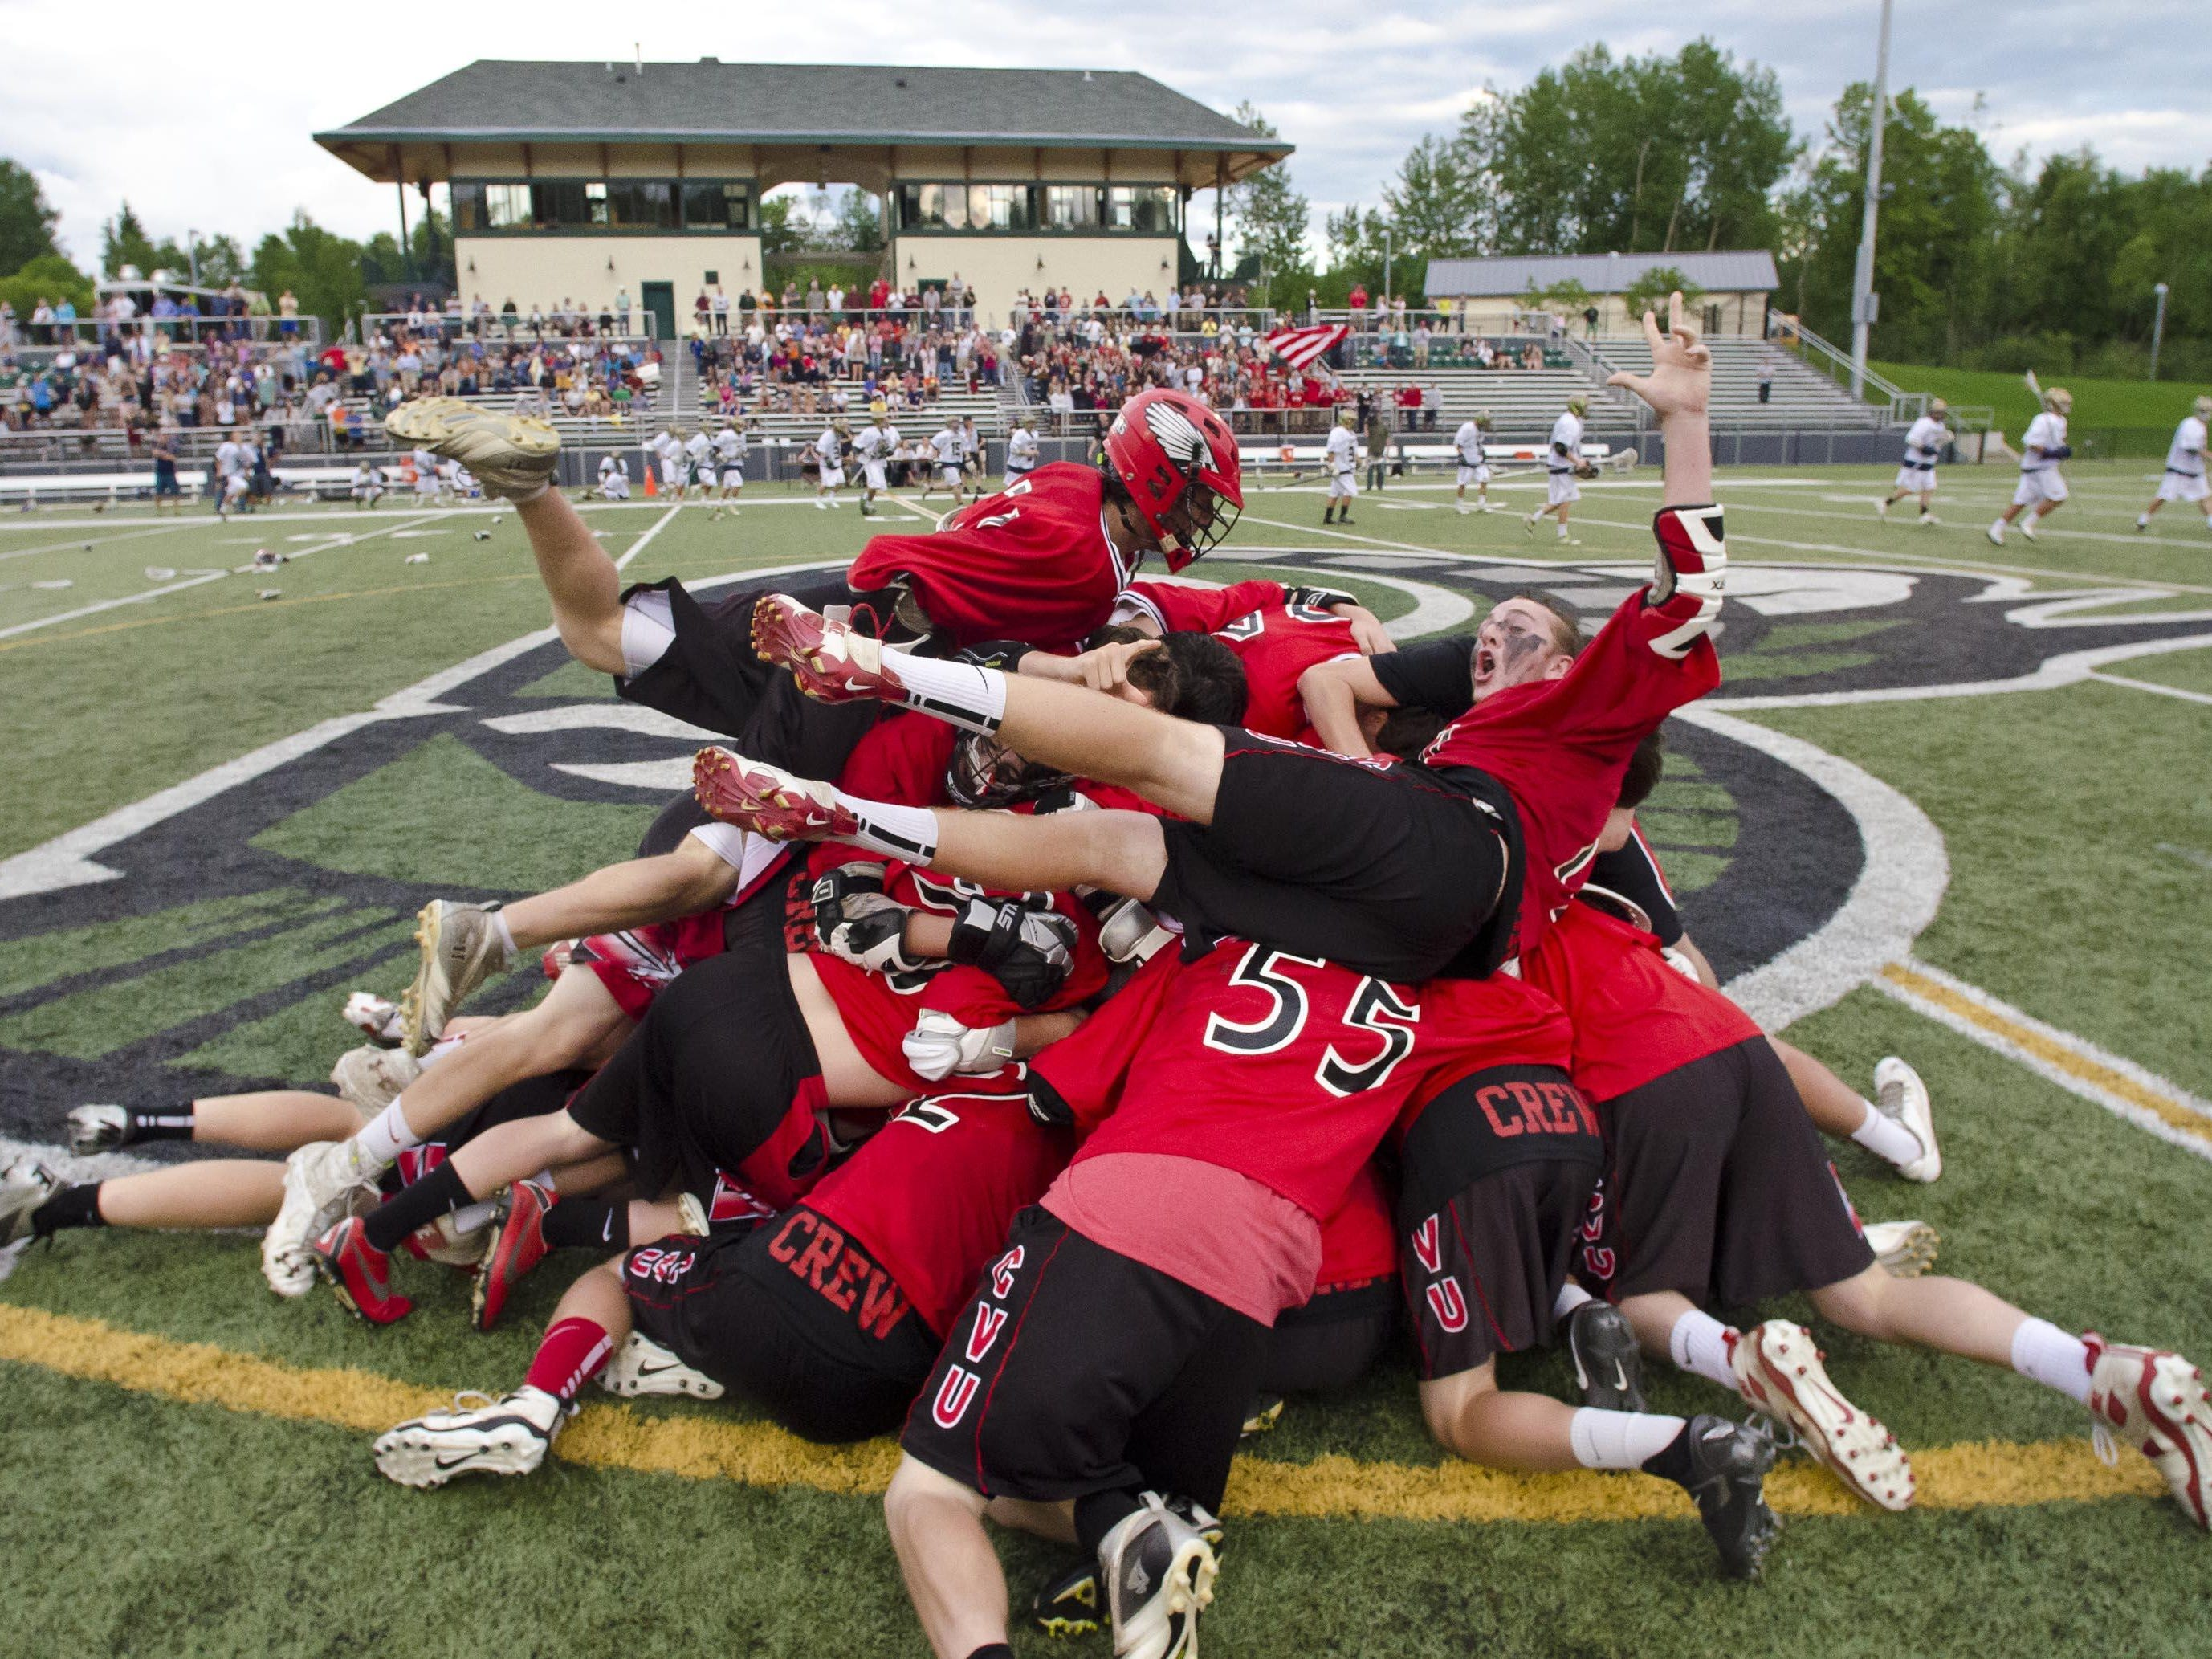 CVU celebrates its victory over Essex in the Division I state high school boys' lacrosse championships at Castleton State College on Monday, June 17, 2013.